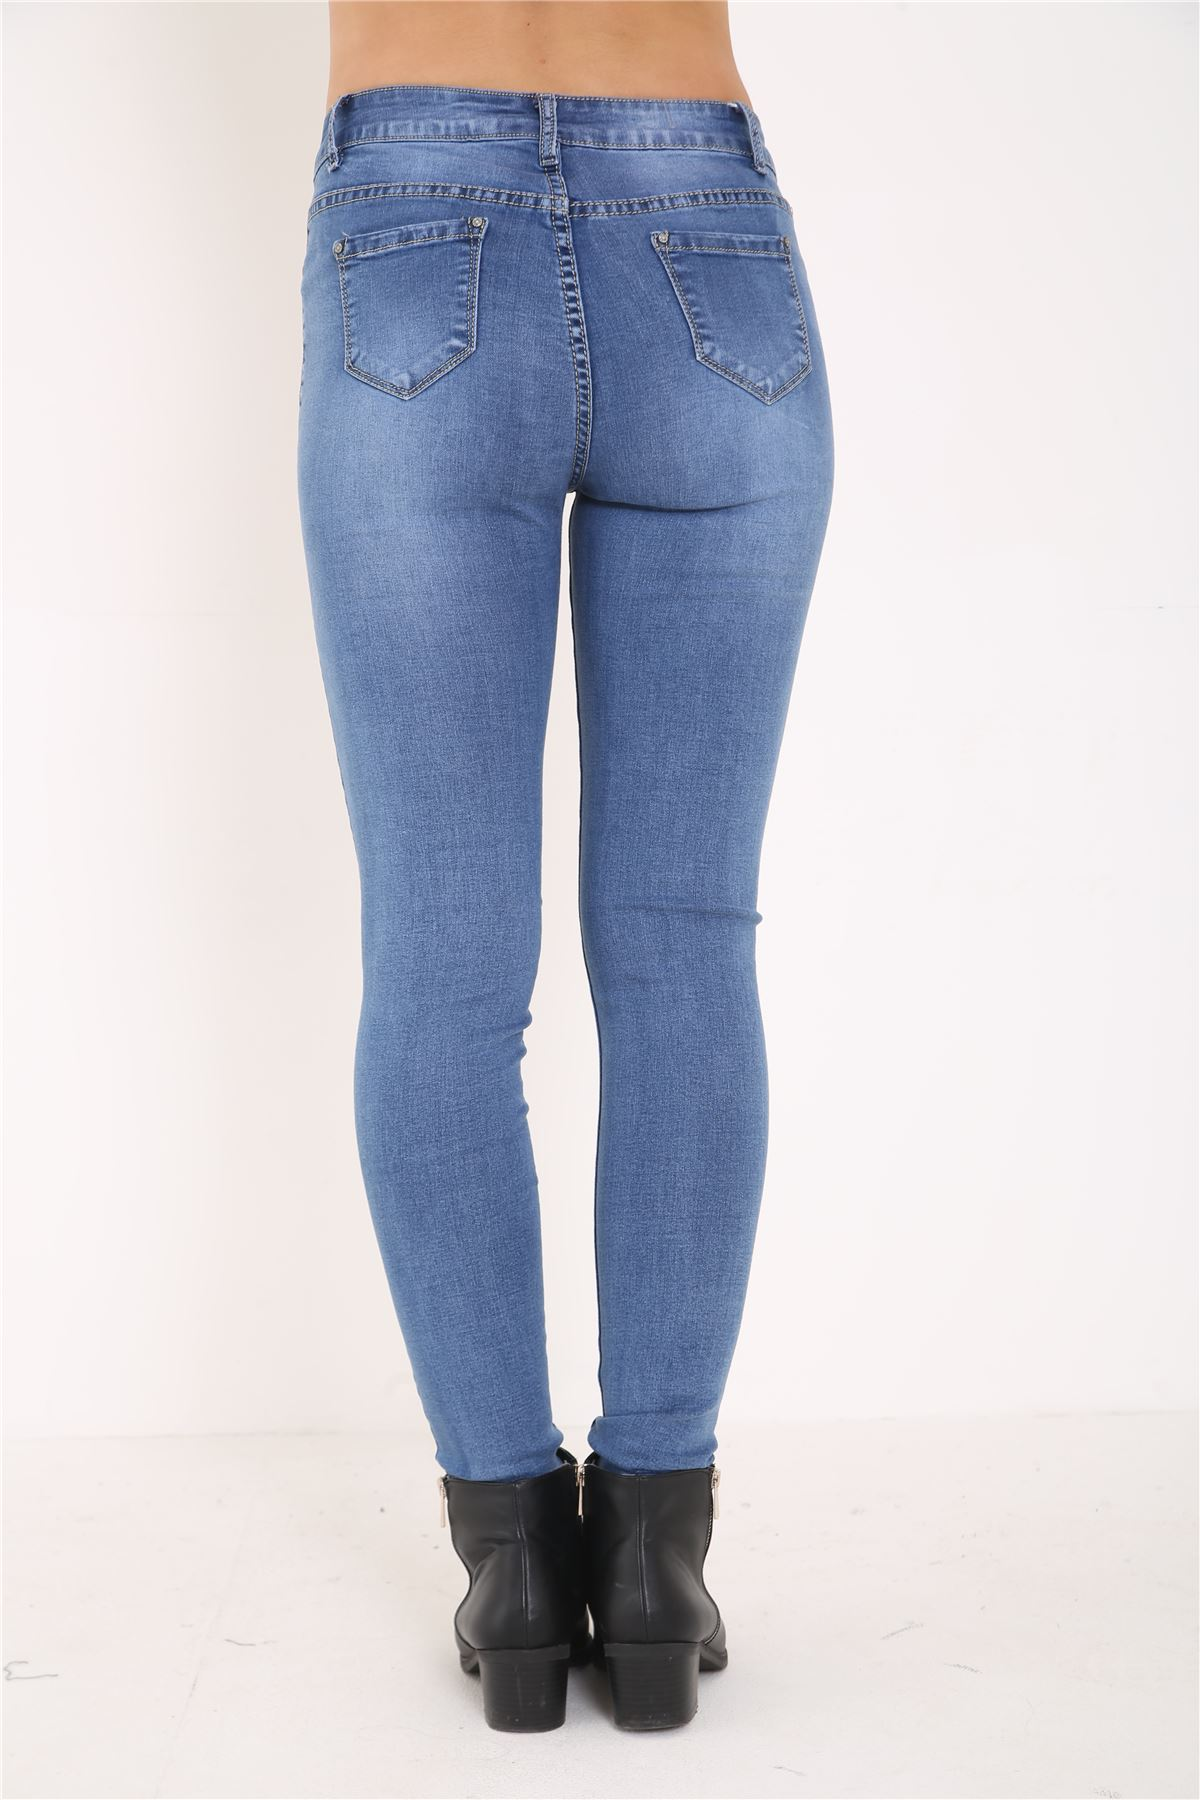 Find your favorite Women's Skinny Jeans with a variety of washes and details at American Eagle Outfitters. American Eagle Skinny Jeans for women come in everything from Rigid jeans (comfortable, but no stretch) to our Denim X4. We're serious about comfort because it matters—and we know our jeans are the best in the industry.